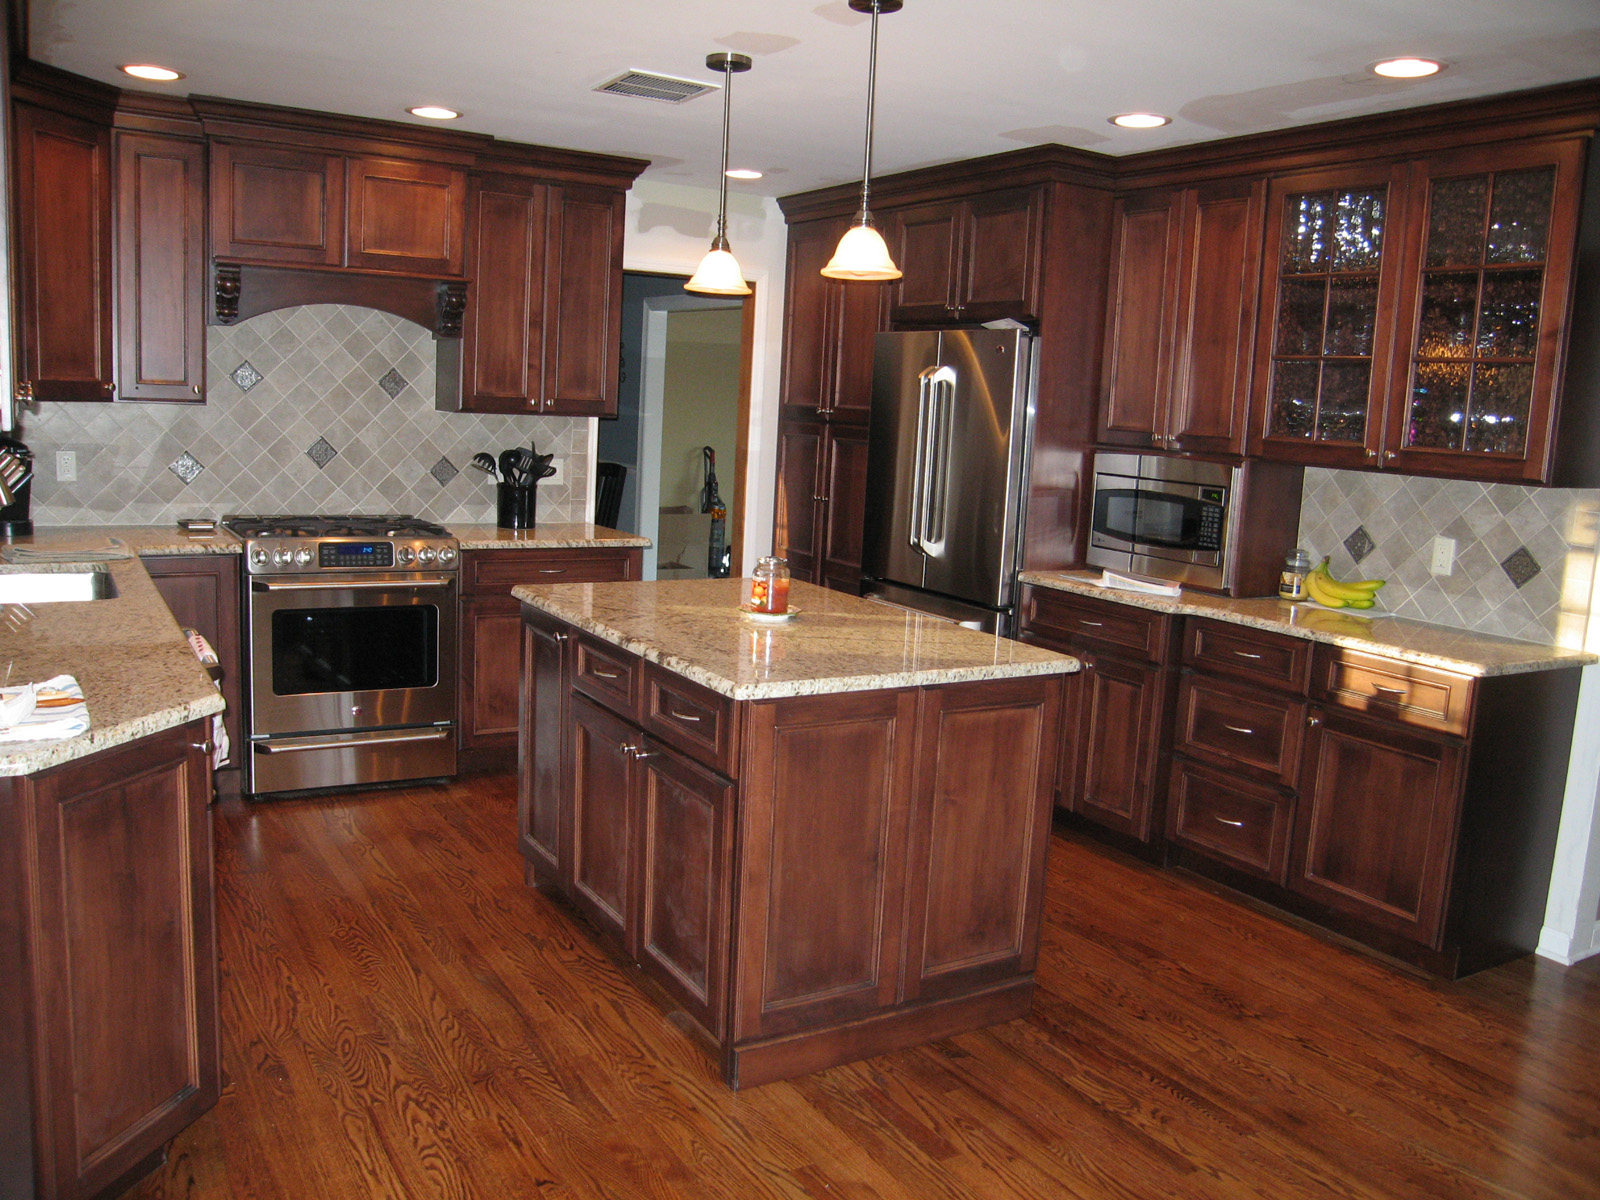 design kitchens p custom in company kitchen philadelphia a ap